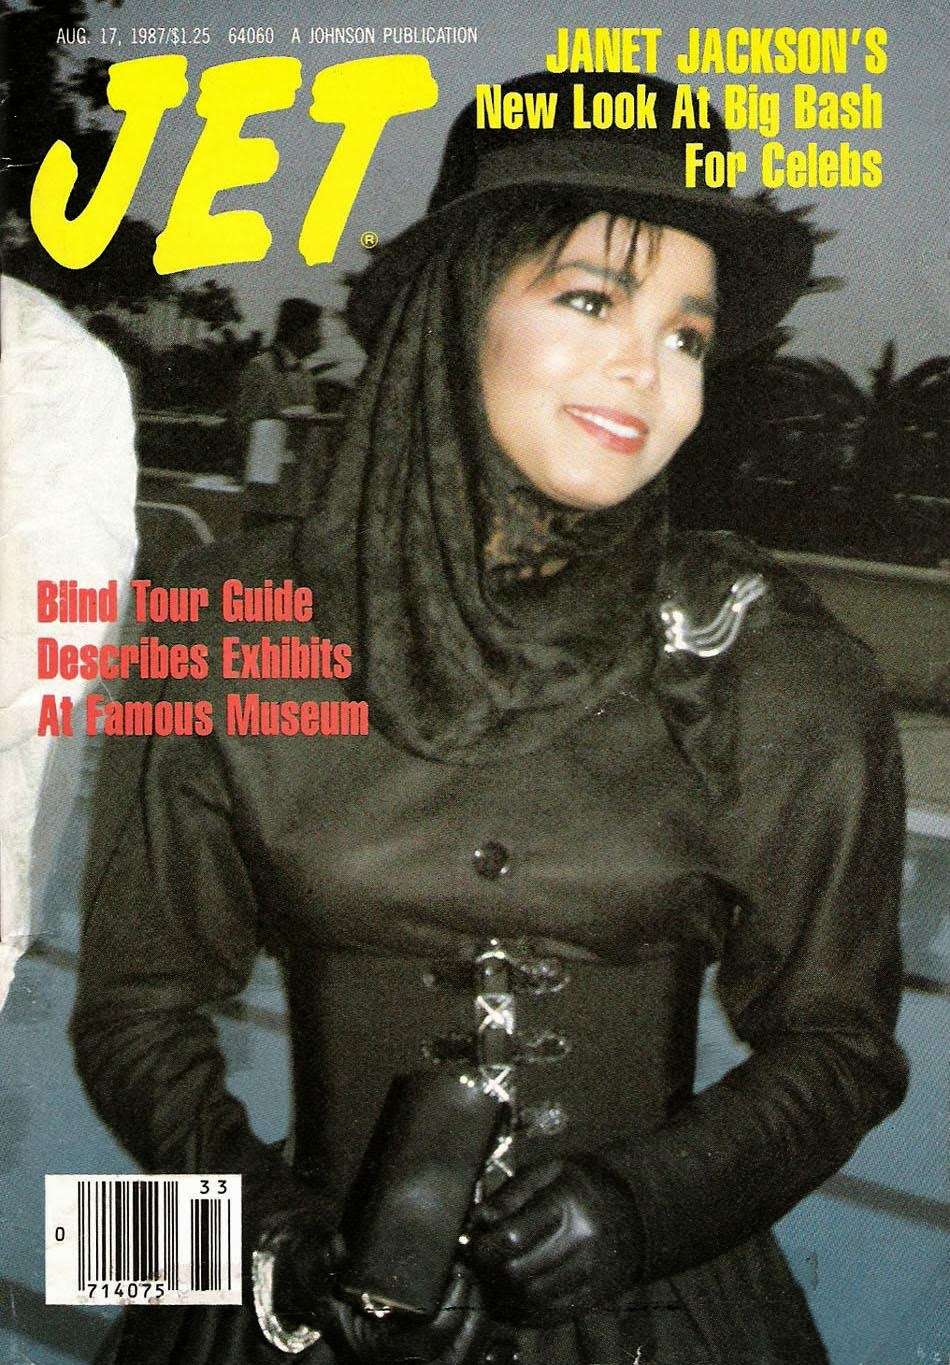 Janet Jackson On The Cover Of Jet